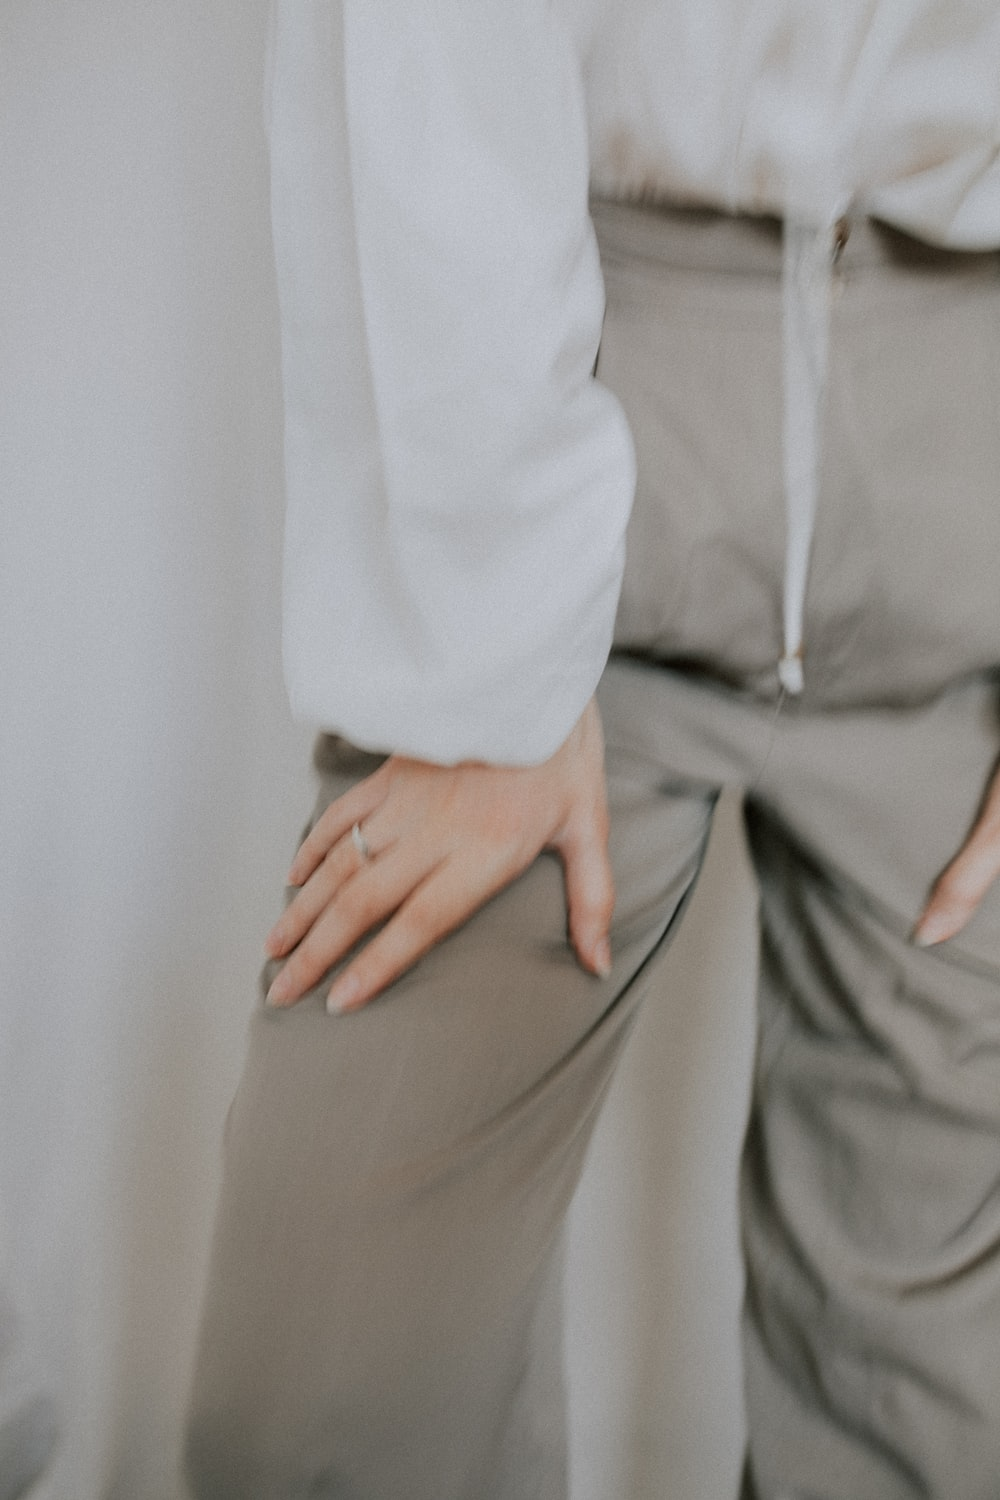 person in white dress shirt and gray pants